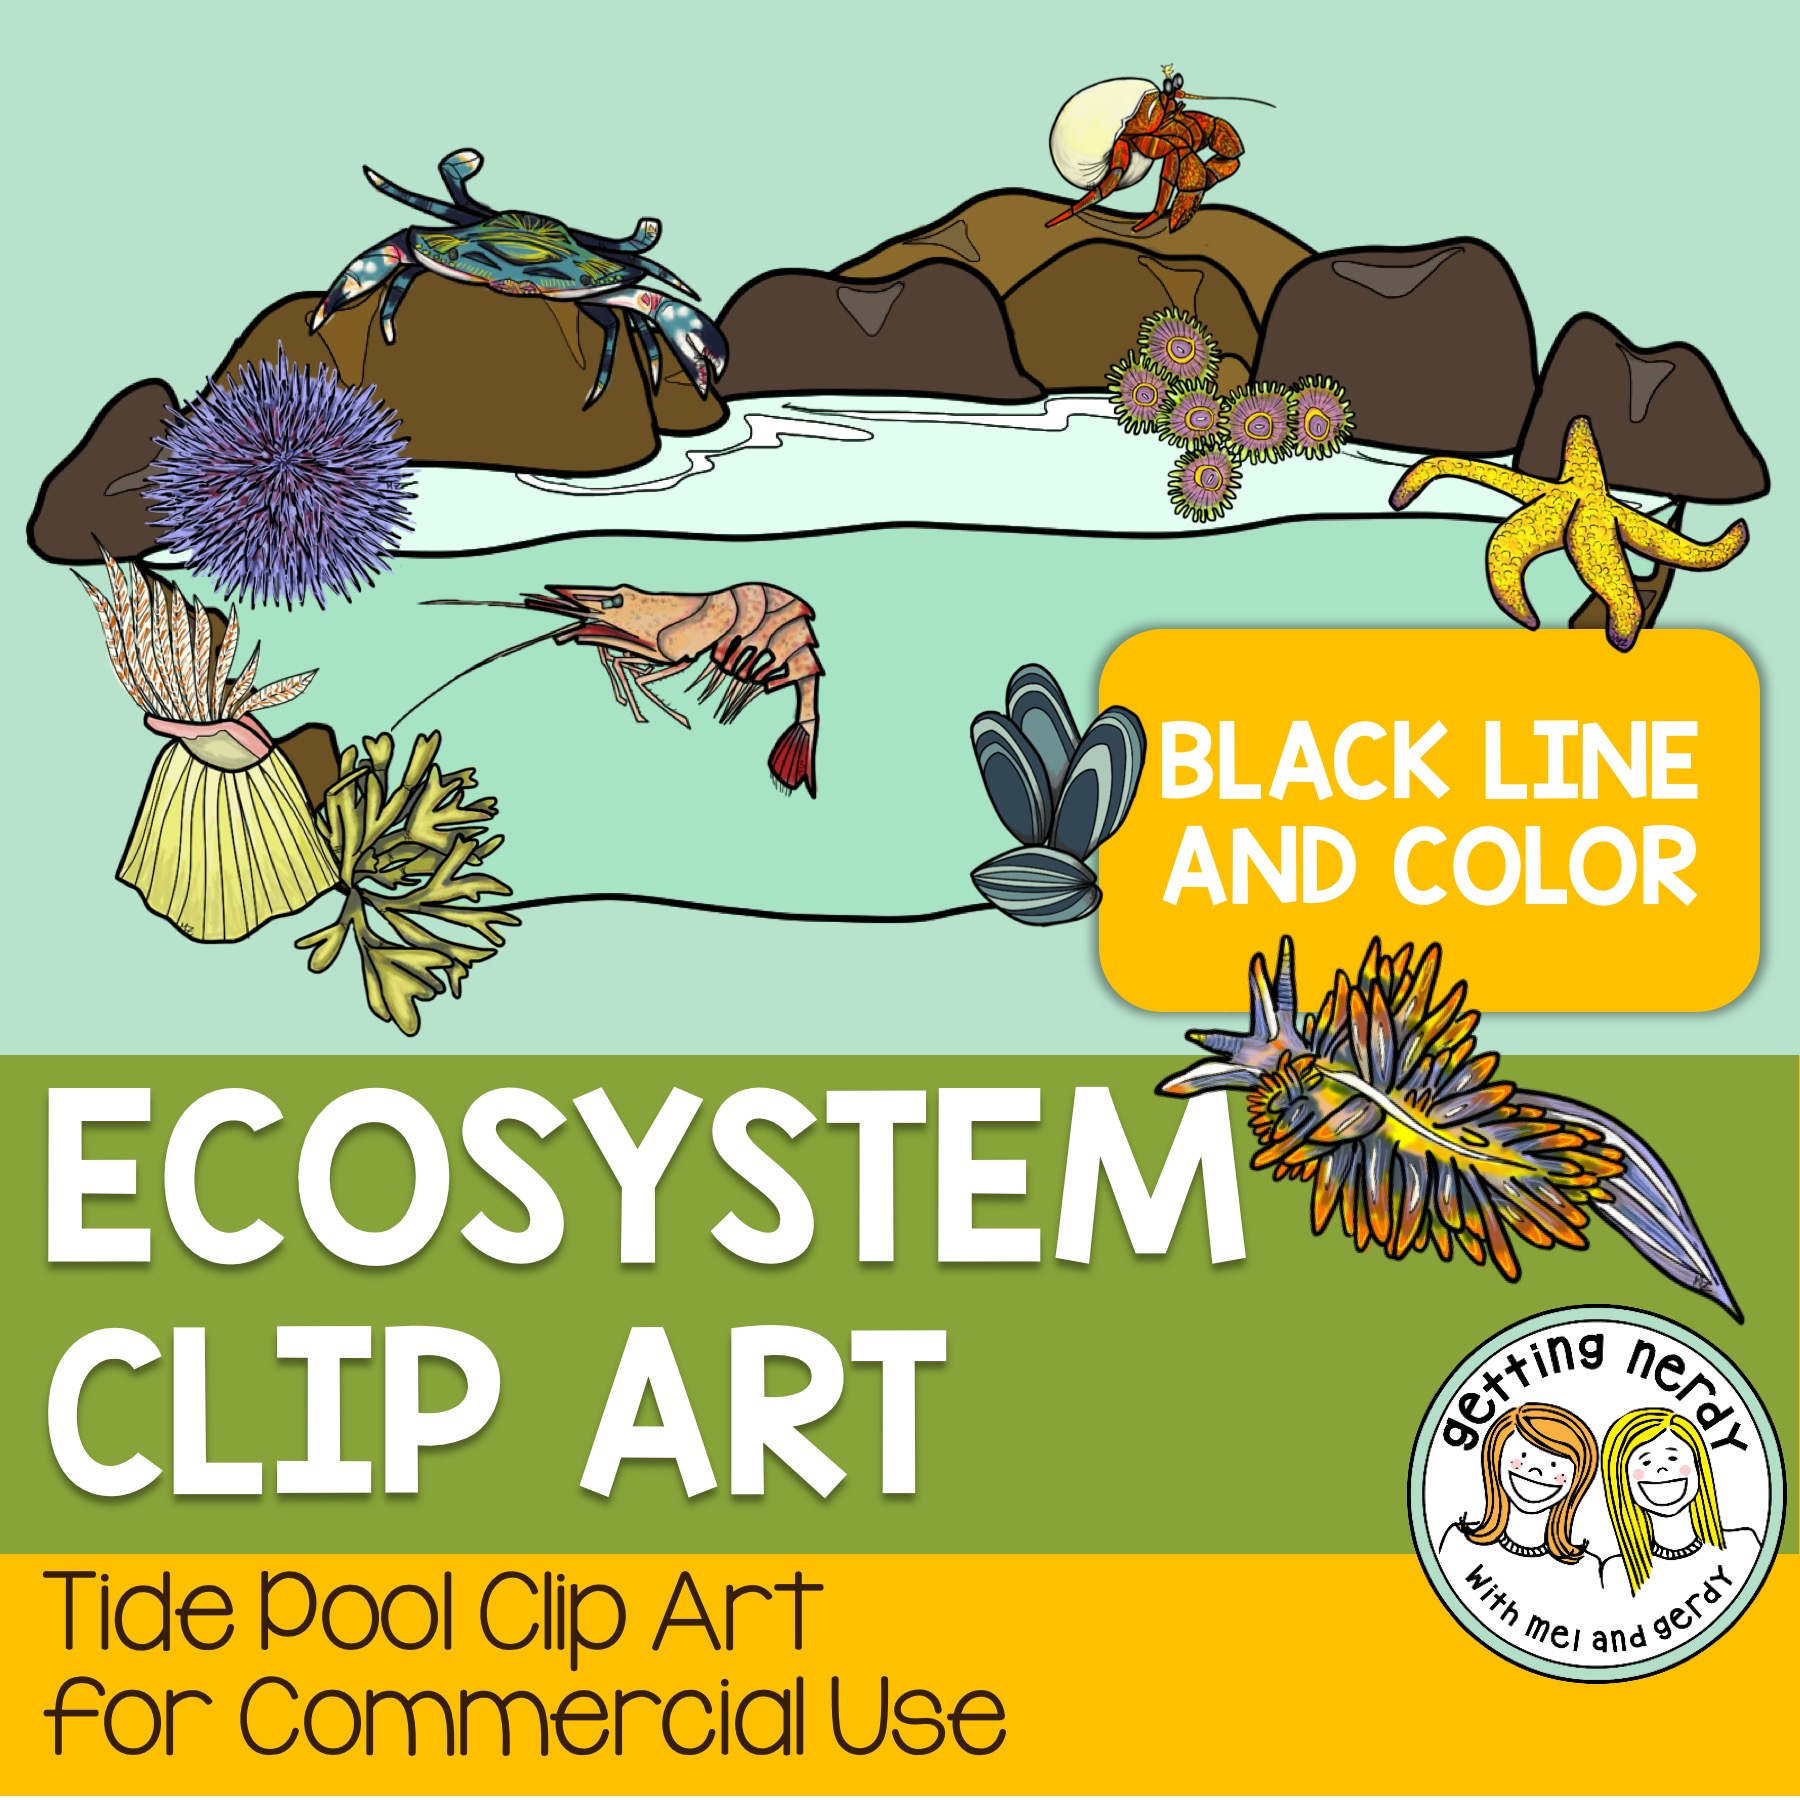 Tide Pool clipart #1, Download drawings